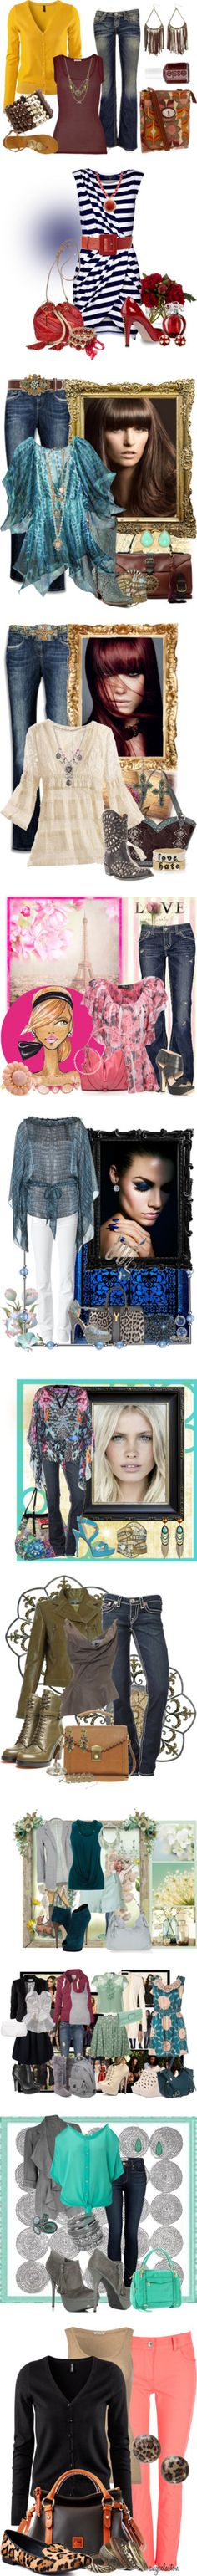 """""""Everyday Wearable"""" by haley-traylor ❤ liked on Polyvore"""